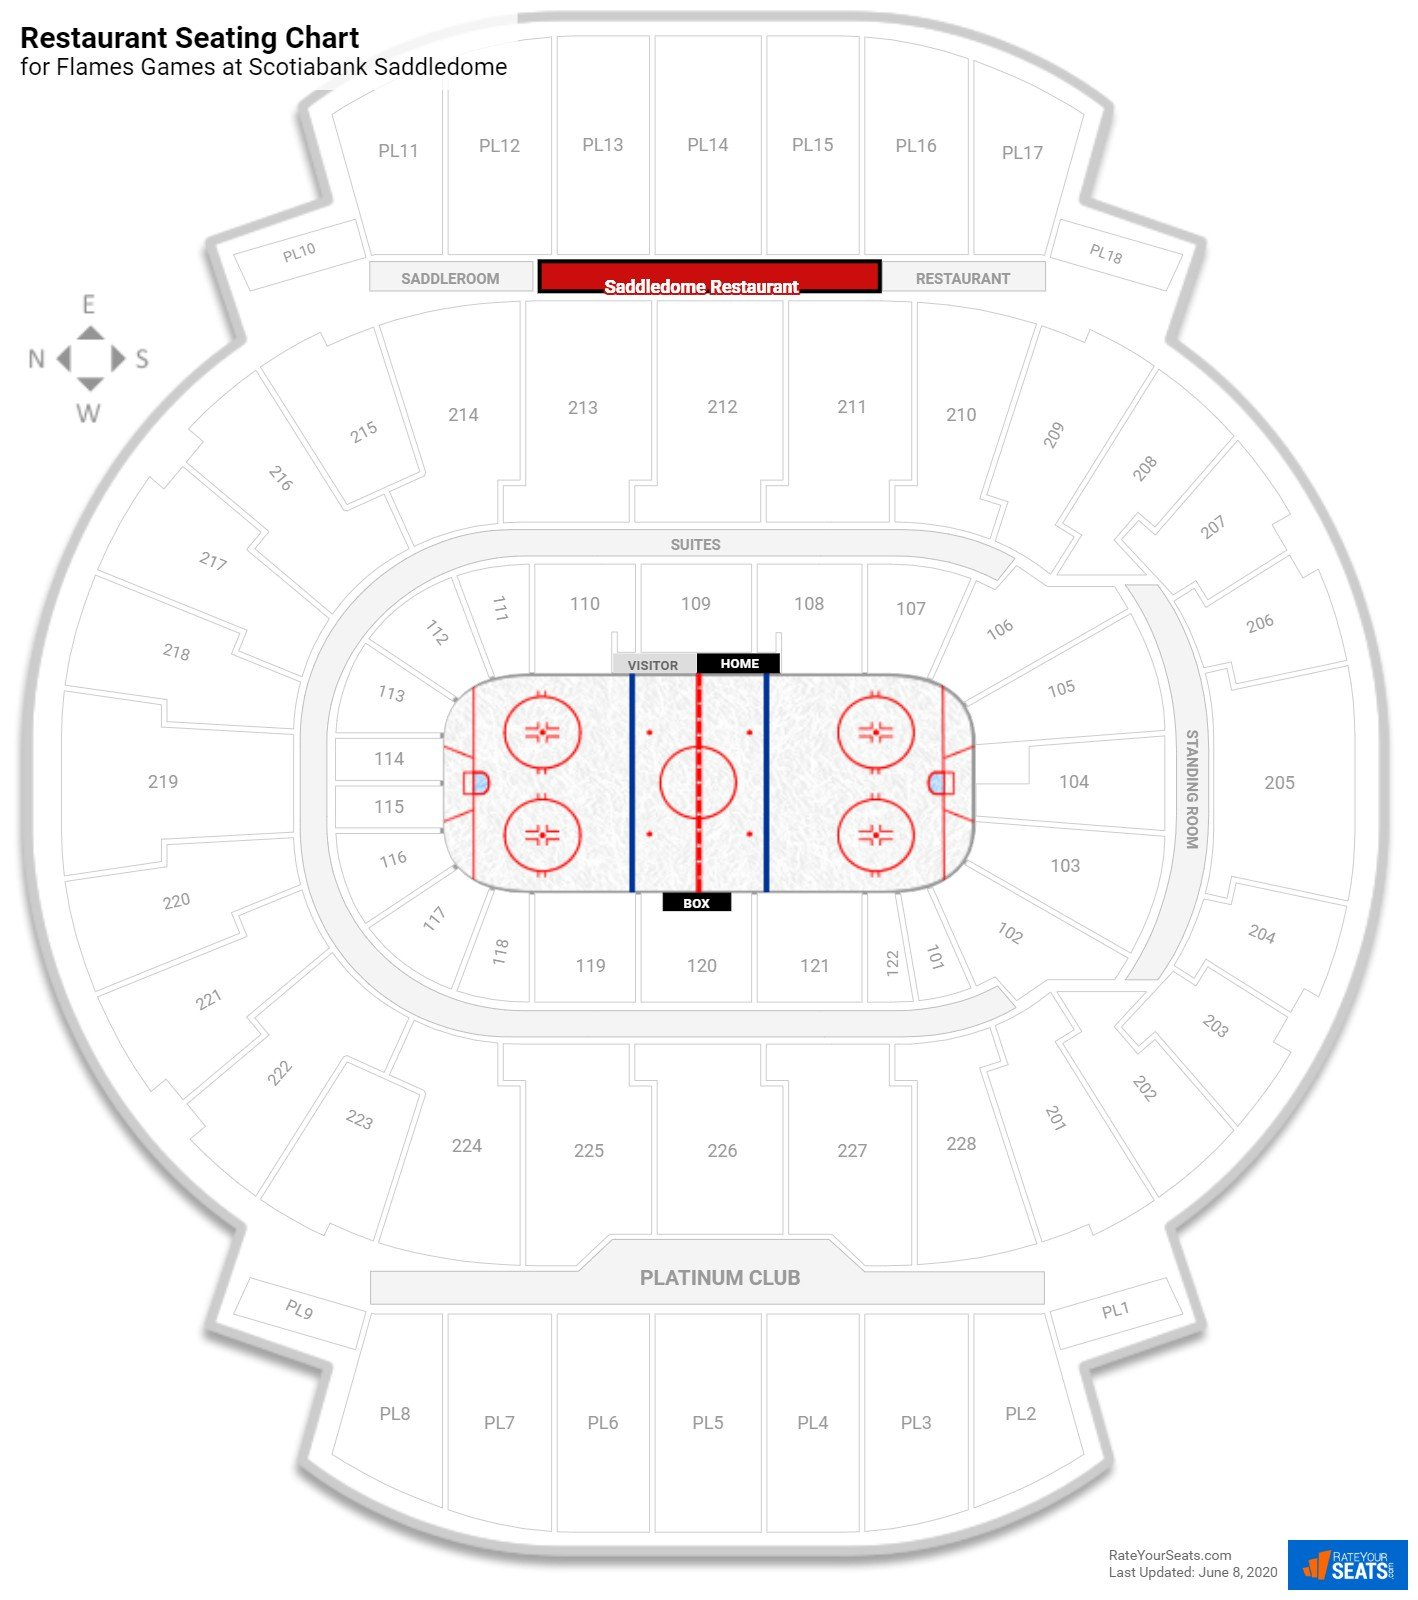 Scotiabank Saddledome Restaurant seating chart